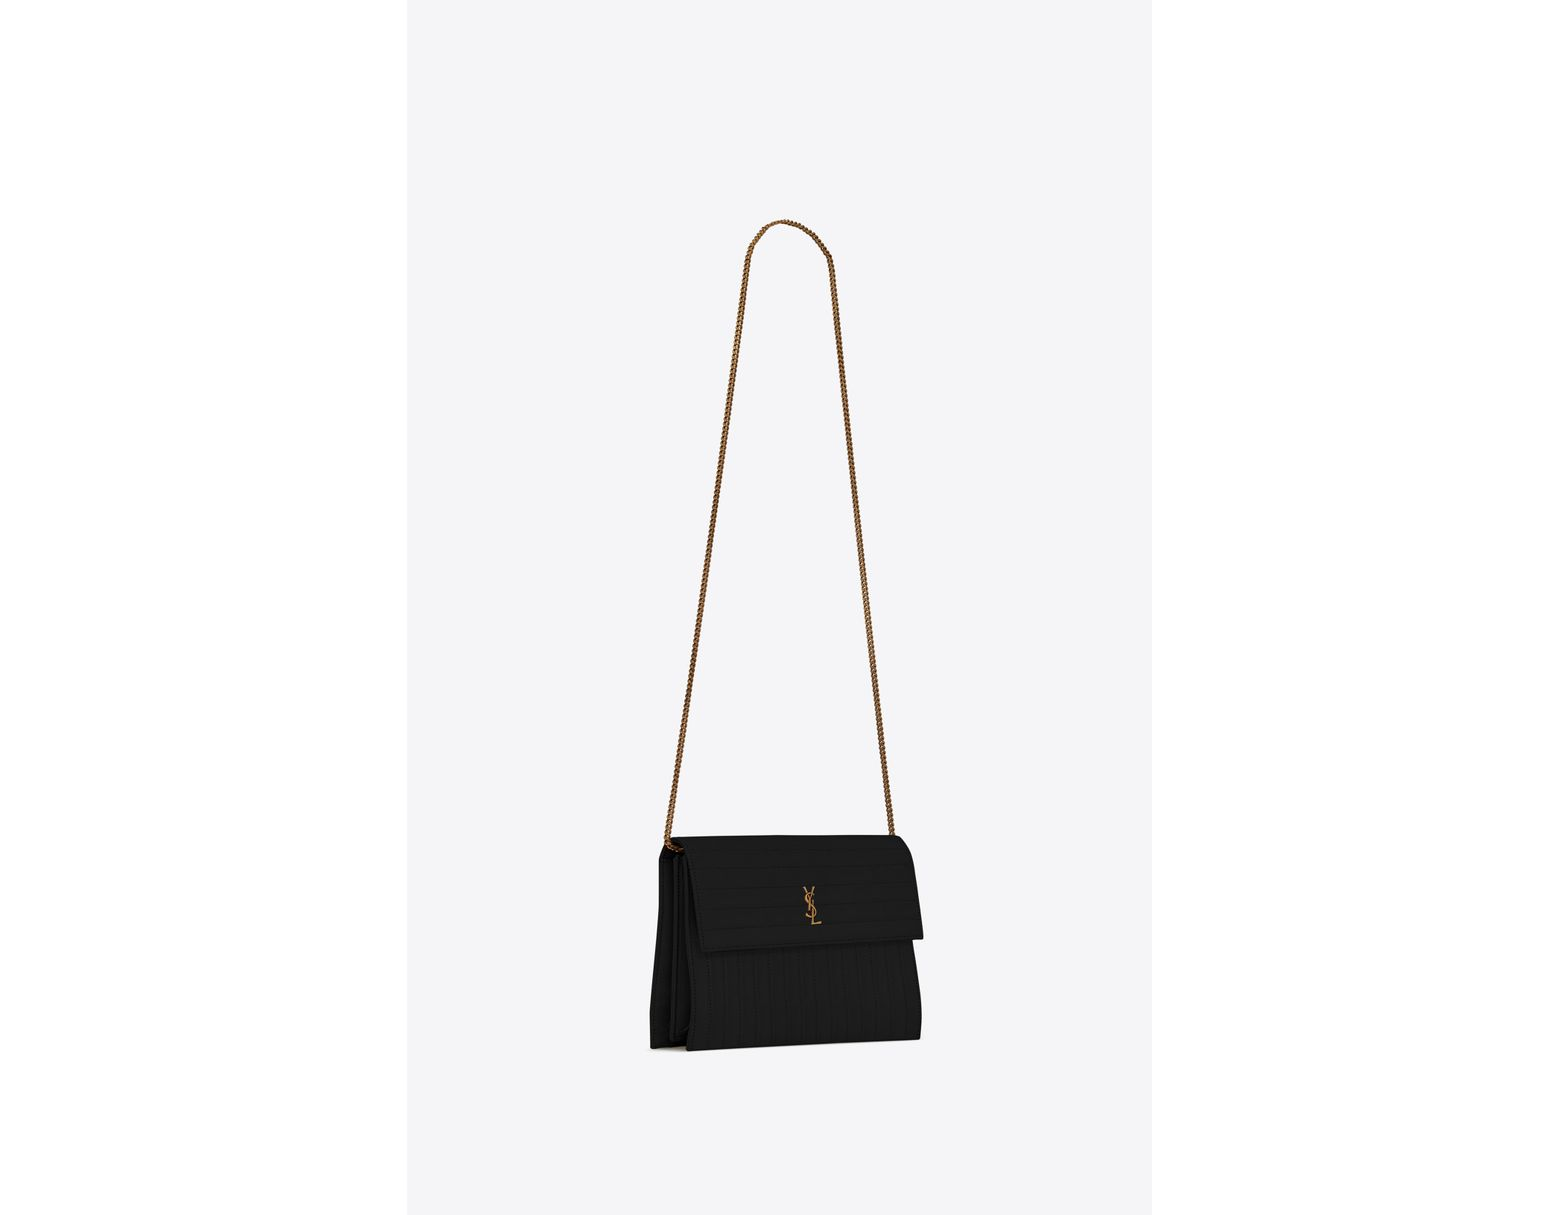 0231acc3a6 Saint Laurent Victoire Chain Bag In Crinkled Leather in Black - Lyst